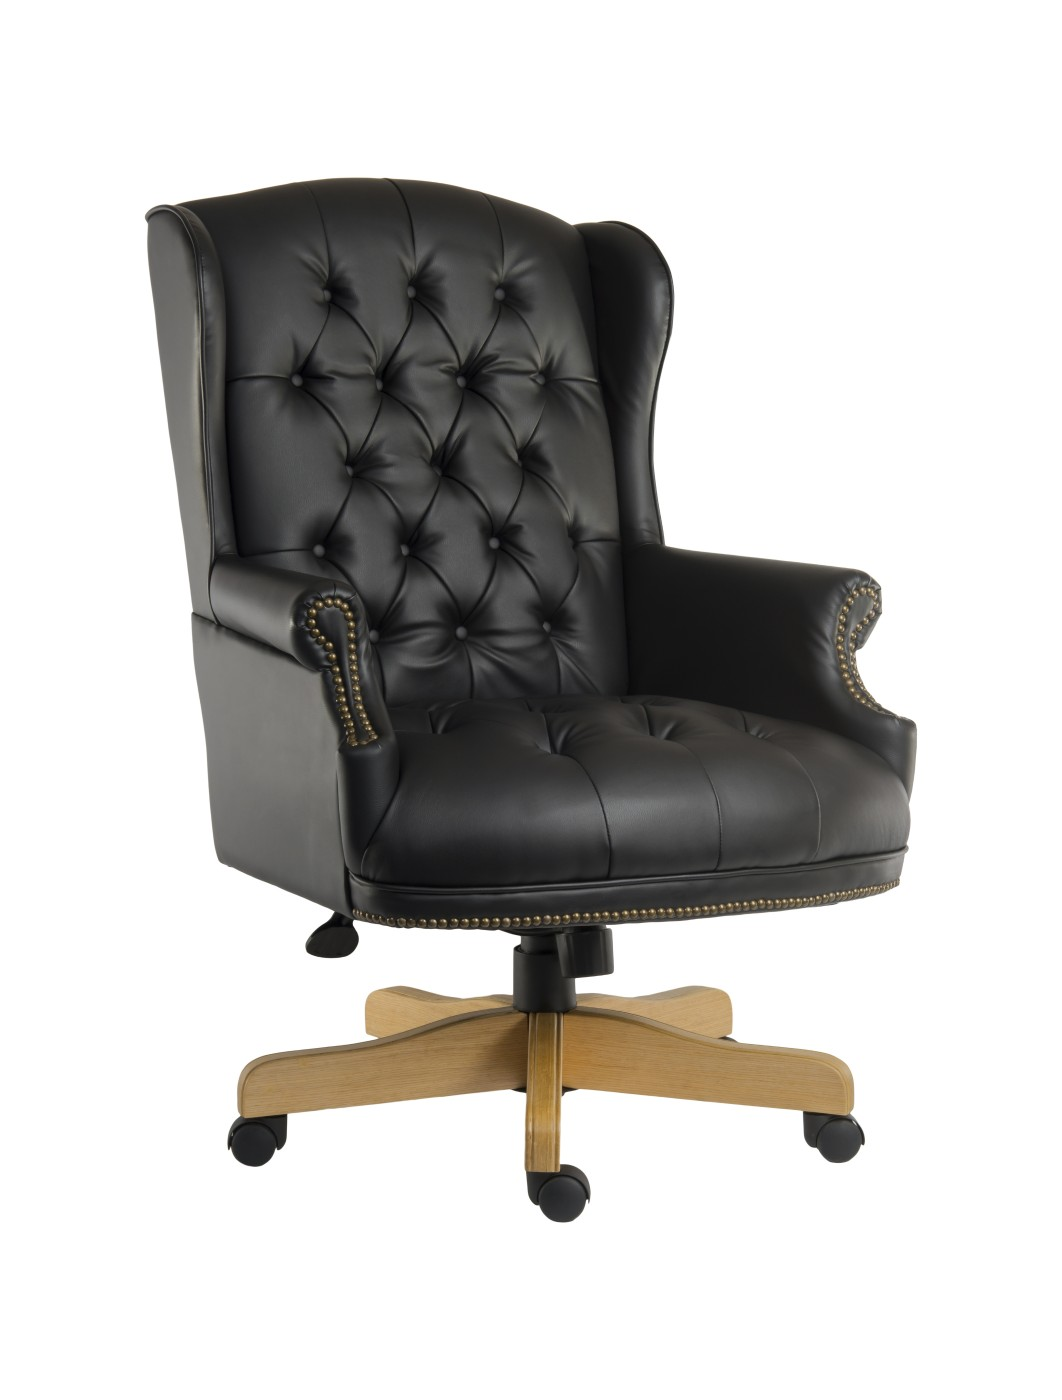 office leather chair. Teknik Chairman Noir Executive Leather Chair B6927 - Enlarged View Office